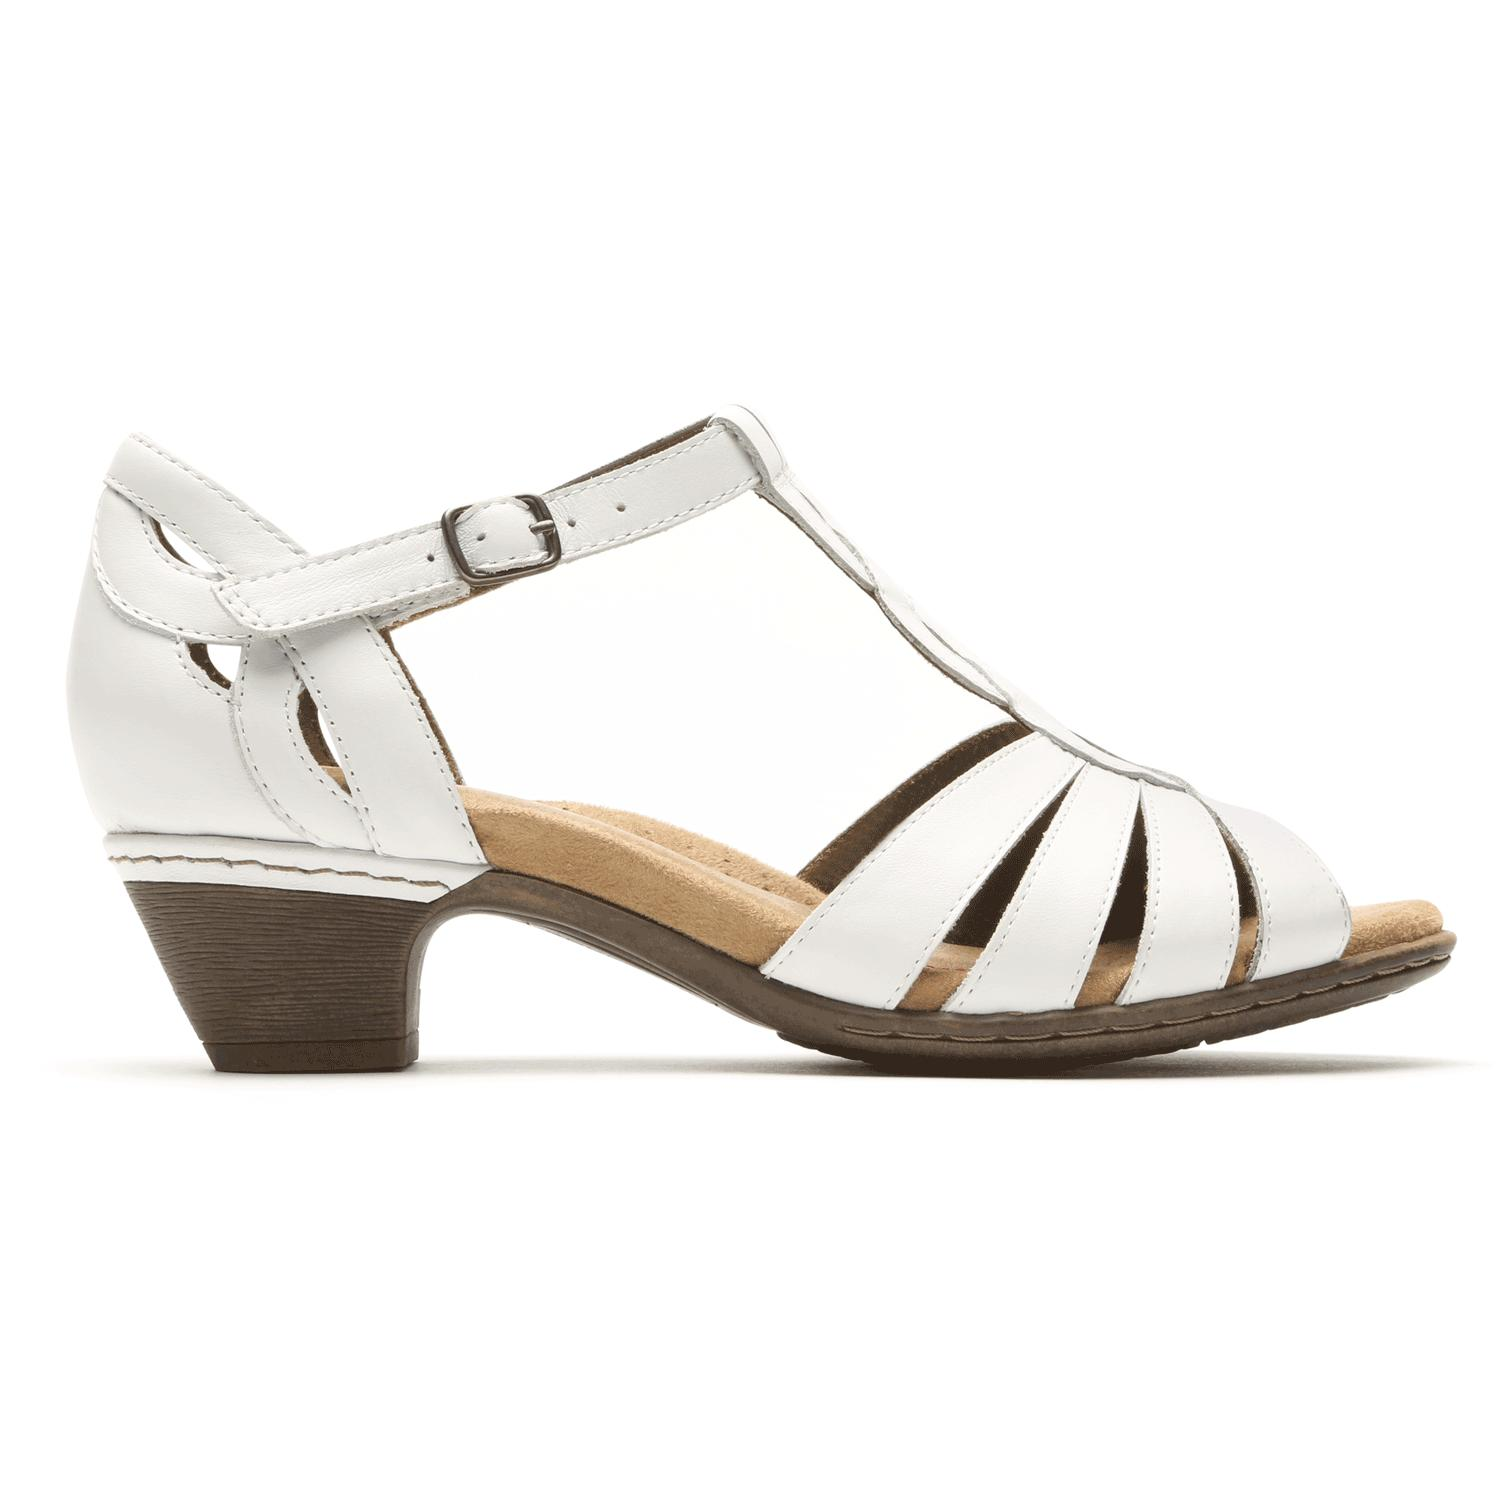 6e18dcb2697db Rockport Cobb Hill Abbott Curvy Strap Sandal in White - Lyst